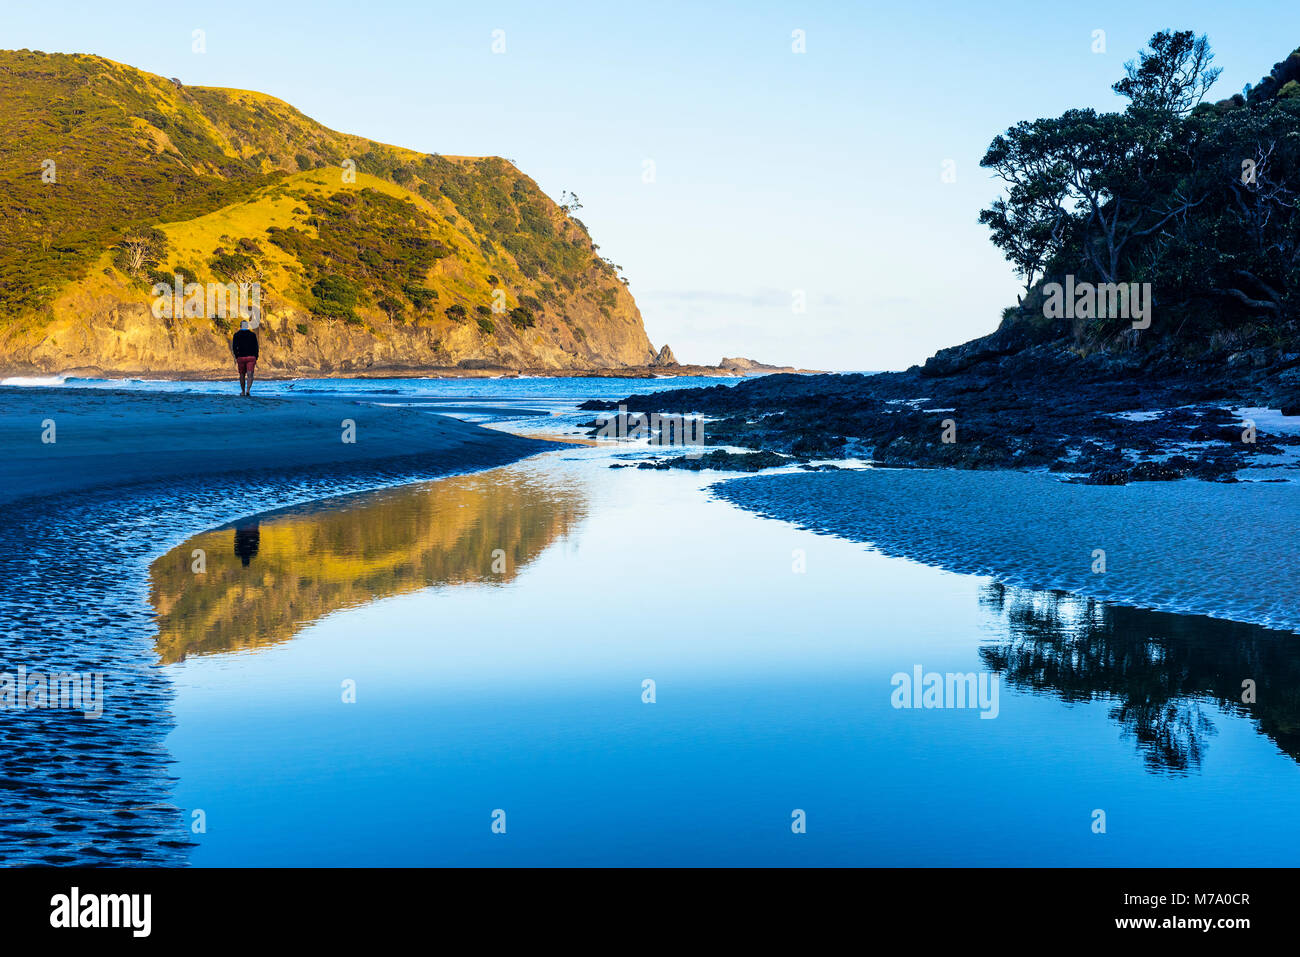 Man walking on beach where Tapotupotu Stream enters Tapotupotu Bay, near Cape Reinga, North Island, New Zealand Stock Photo